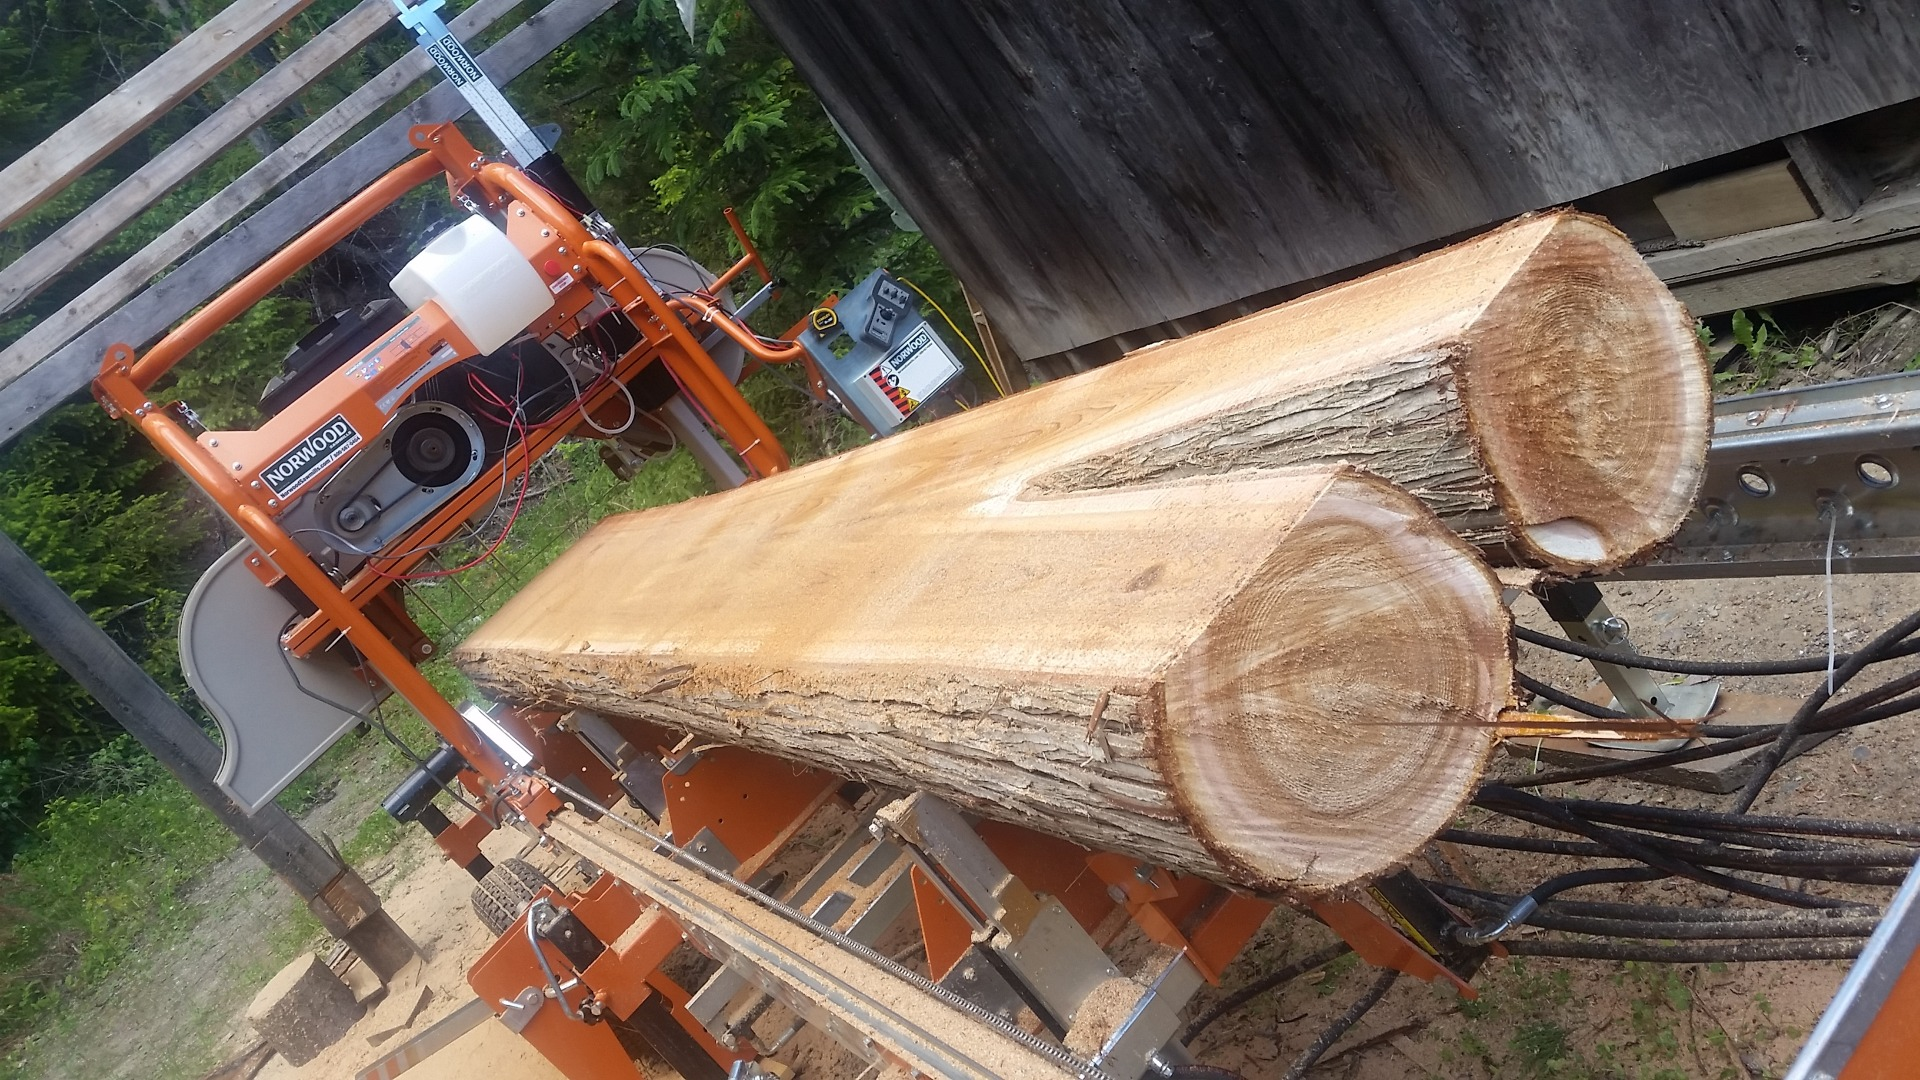 Forum on this topic: How to Saw Lumber, how-to-saw-lumber/